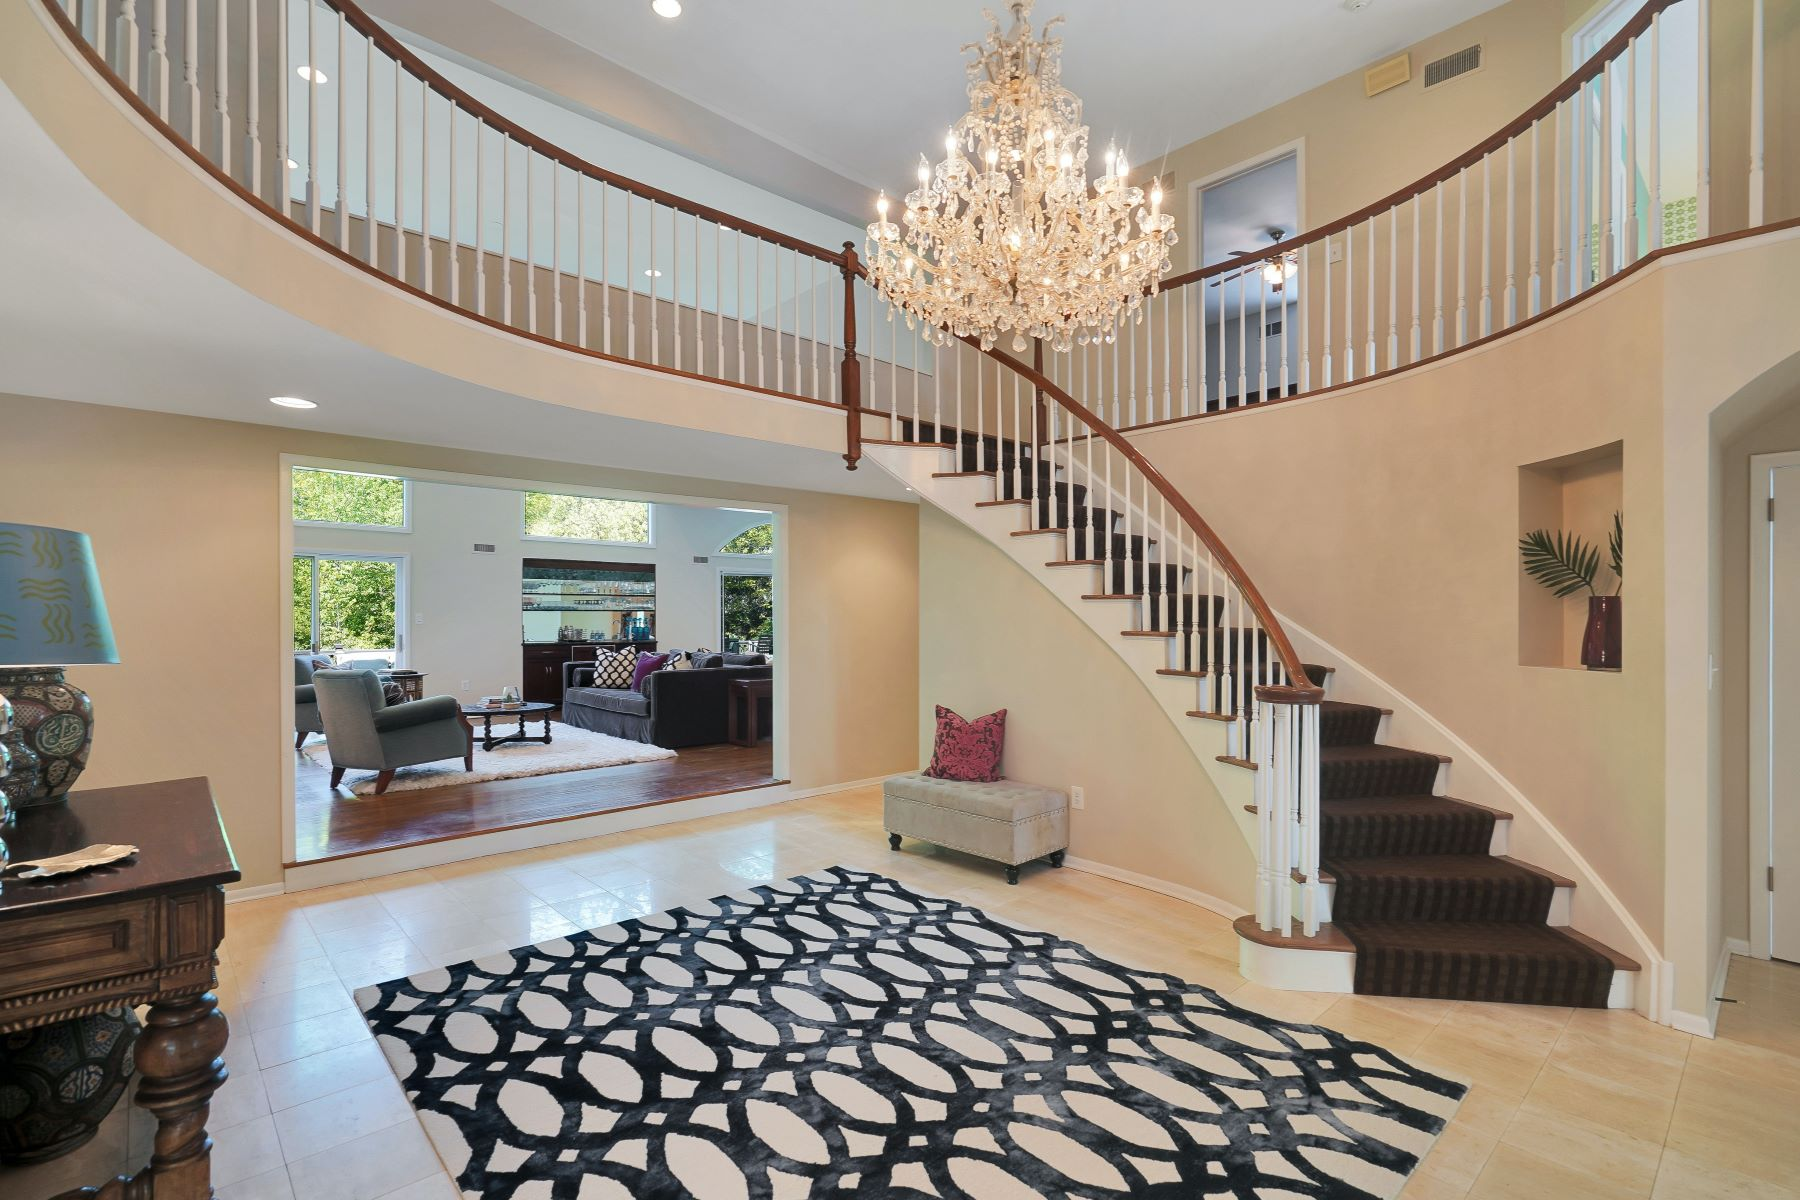 Single Family Homes for Sale at Dreamy Colonial 9 Robert Drive Short Hills, New Jersey 07078 United States